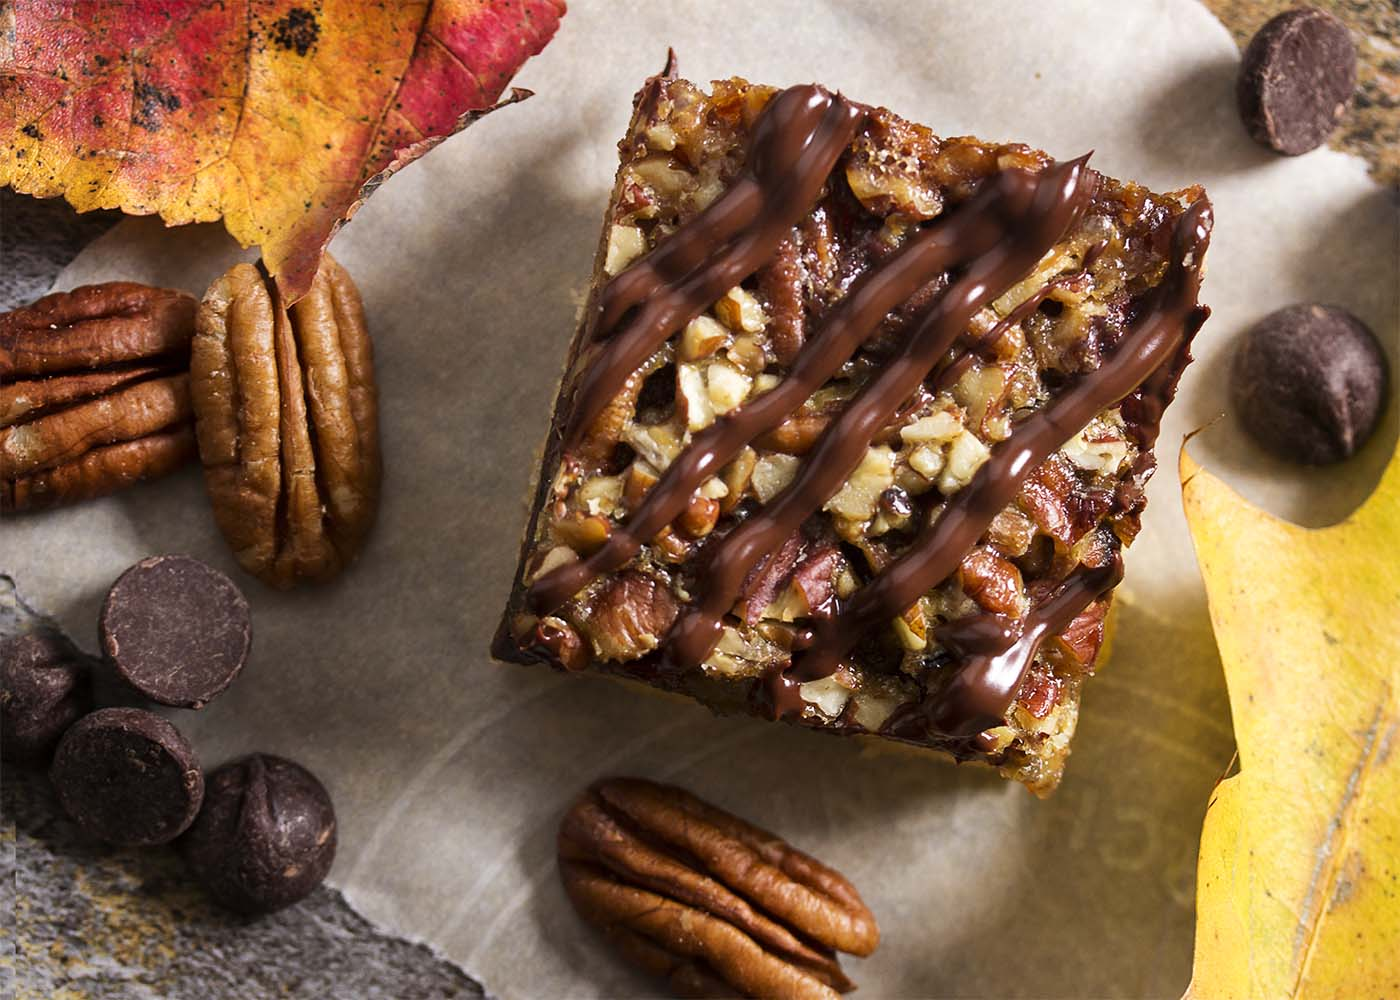 Top view of a chocolate bourbon pecan bar with chocolate drizzle over the top.